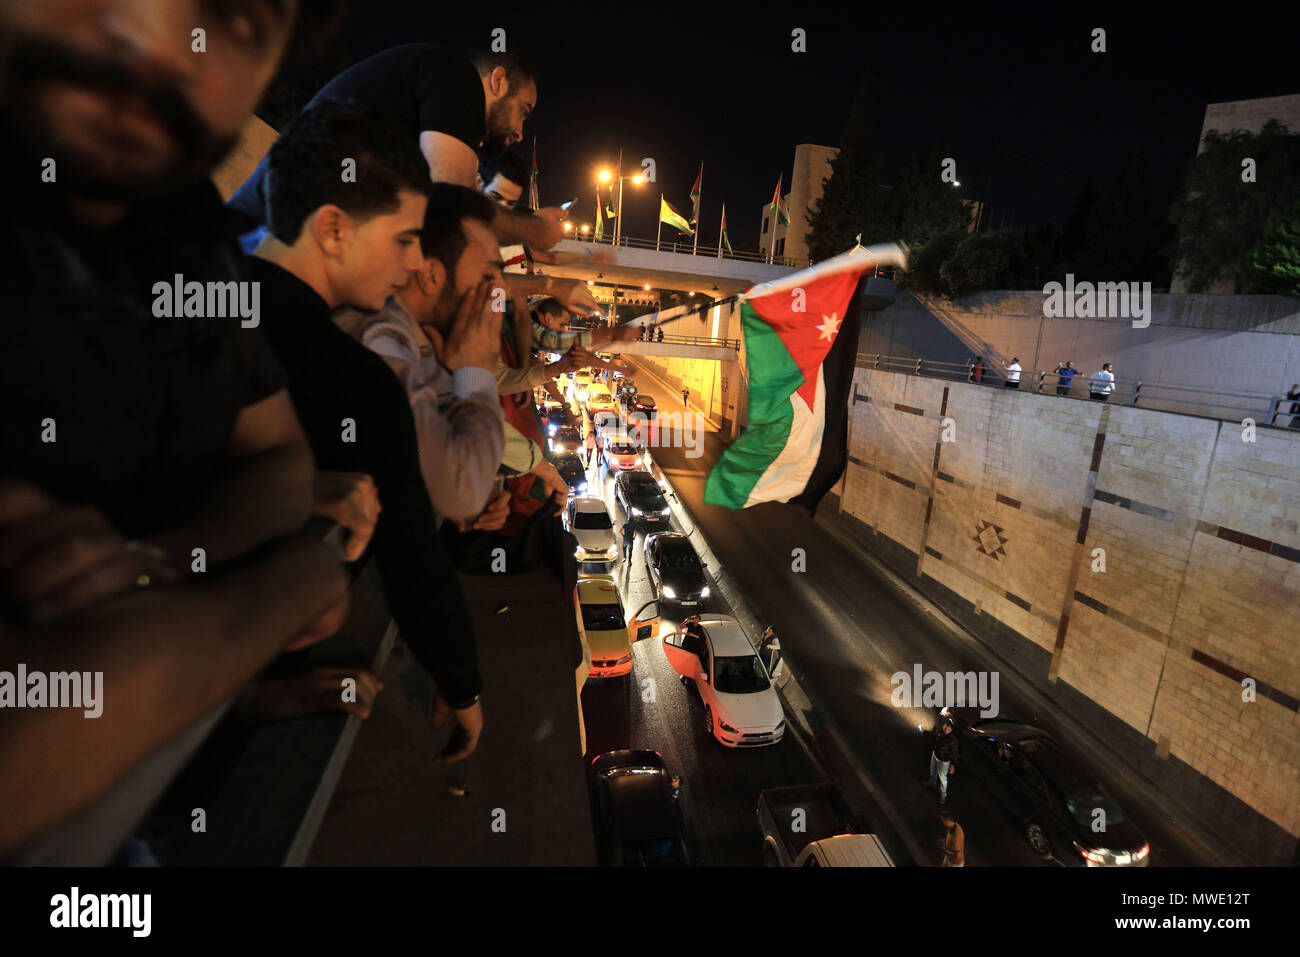 Amman, Jordan. 1st June, 2018. Demonstrators gather near the Prime Minister's office in Amman, Jordan, on June 1, 2018. King Abdullah II of Jordan on Friday ordered a freeze of hikes on prices of electricity and fuel following protests by Jordanians across the country. Credit: Mohammad Abu Ghosh/Xinhua/Alamy Live News - Stock Image